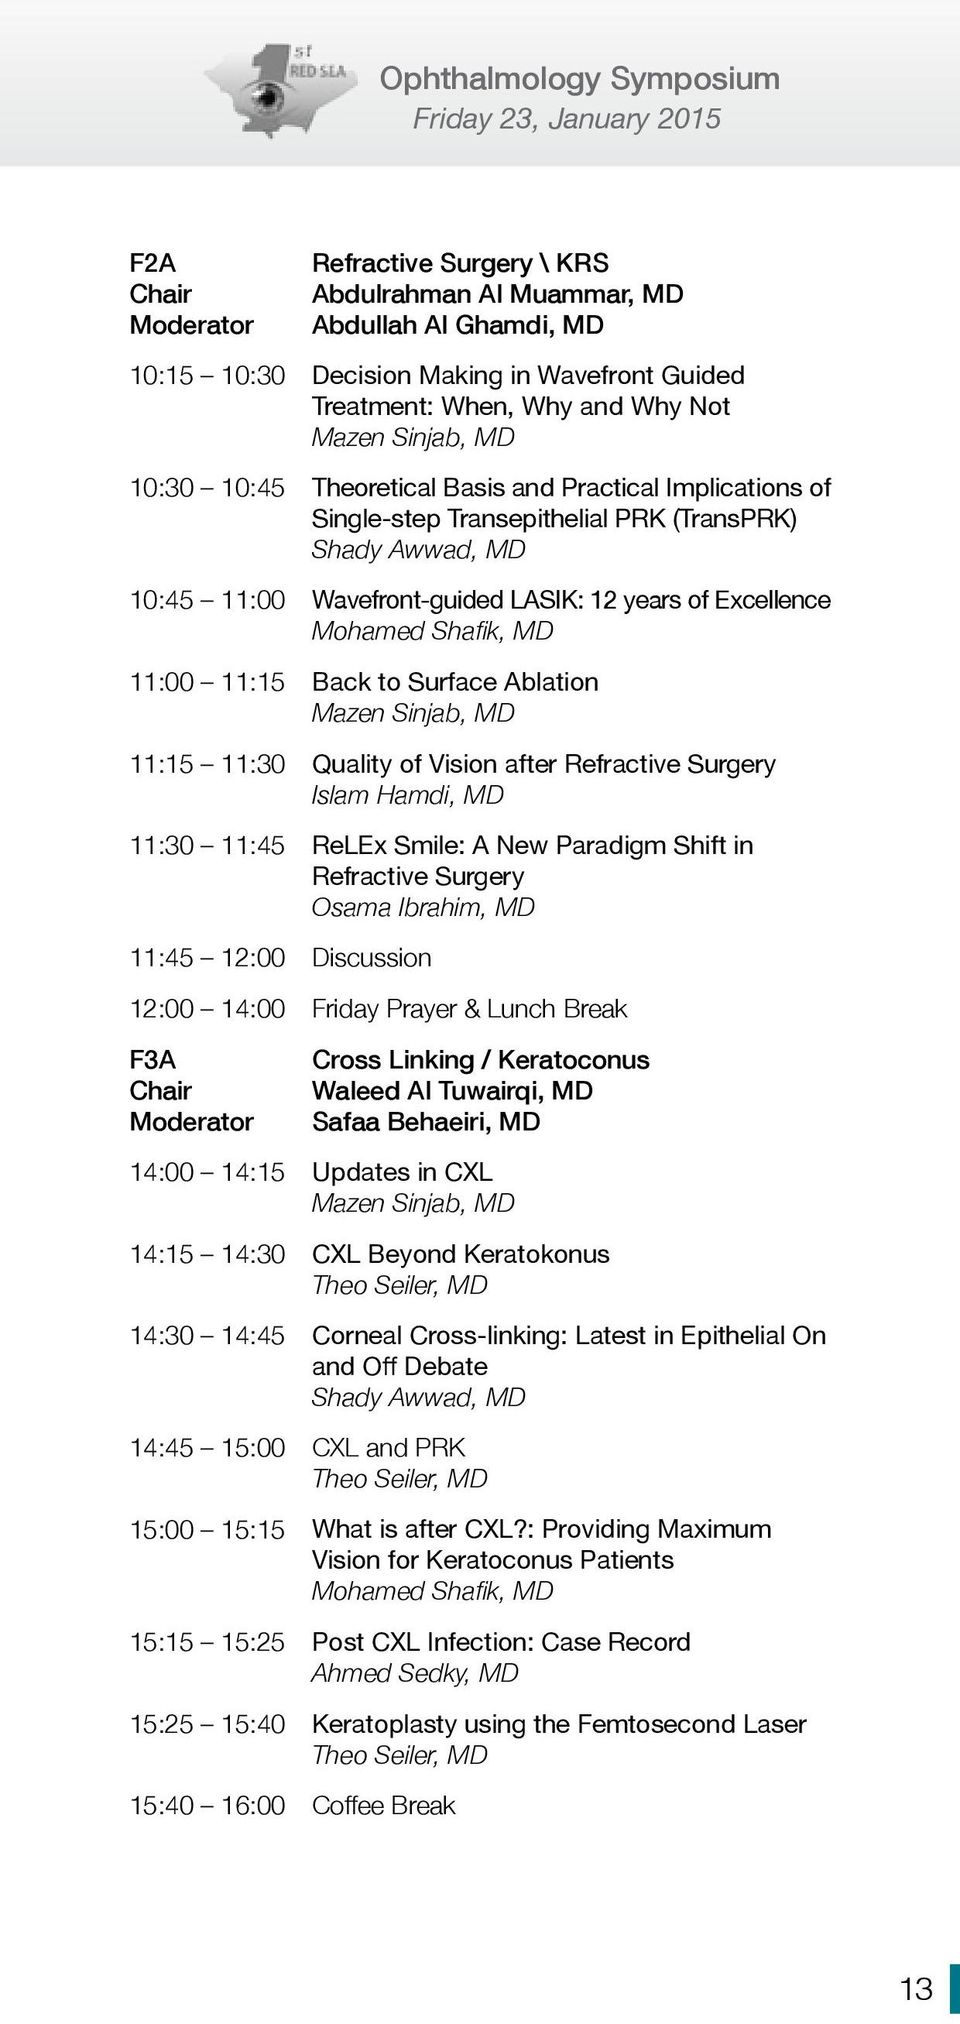 Quality of Vision after Refractive Surgery Islam Hamdi, MD 11:30 11:45 ReLEx Smile: A New Paradigm Shift in Refractive Surgery 11:45 12:00 Discussion 12:00 14:00 Friday Prayer & Lunch Break F3A Cross